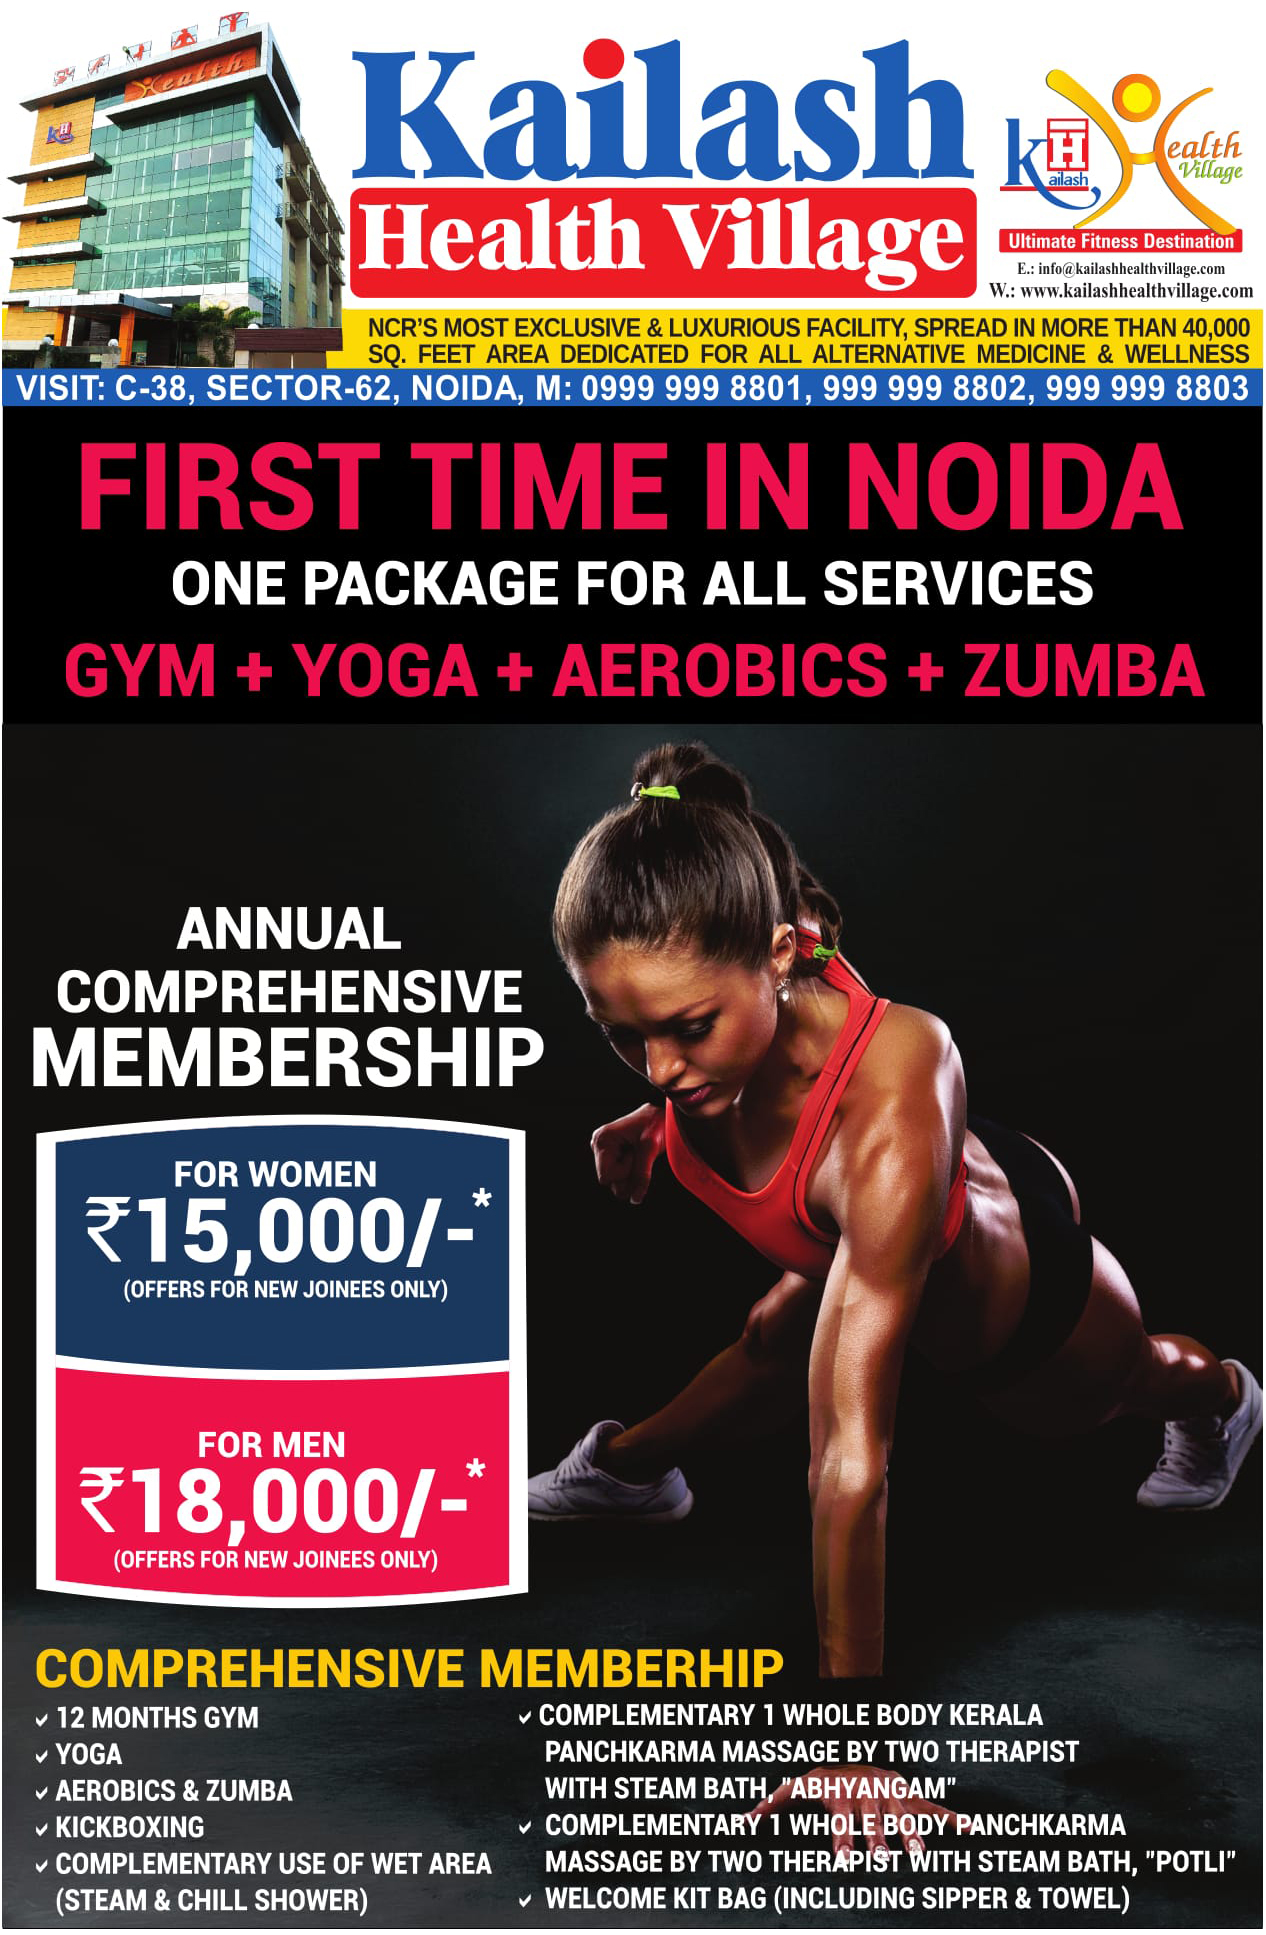 First Time in Noida One Package for all services. GYM + YOGA + AEROBICS + ZUMBA